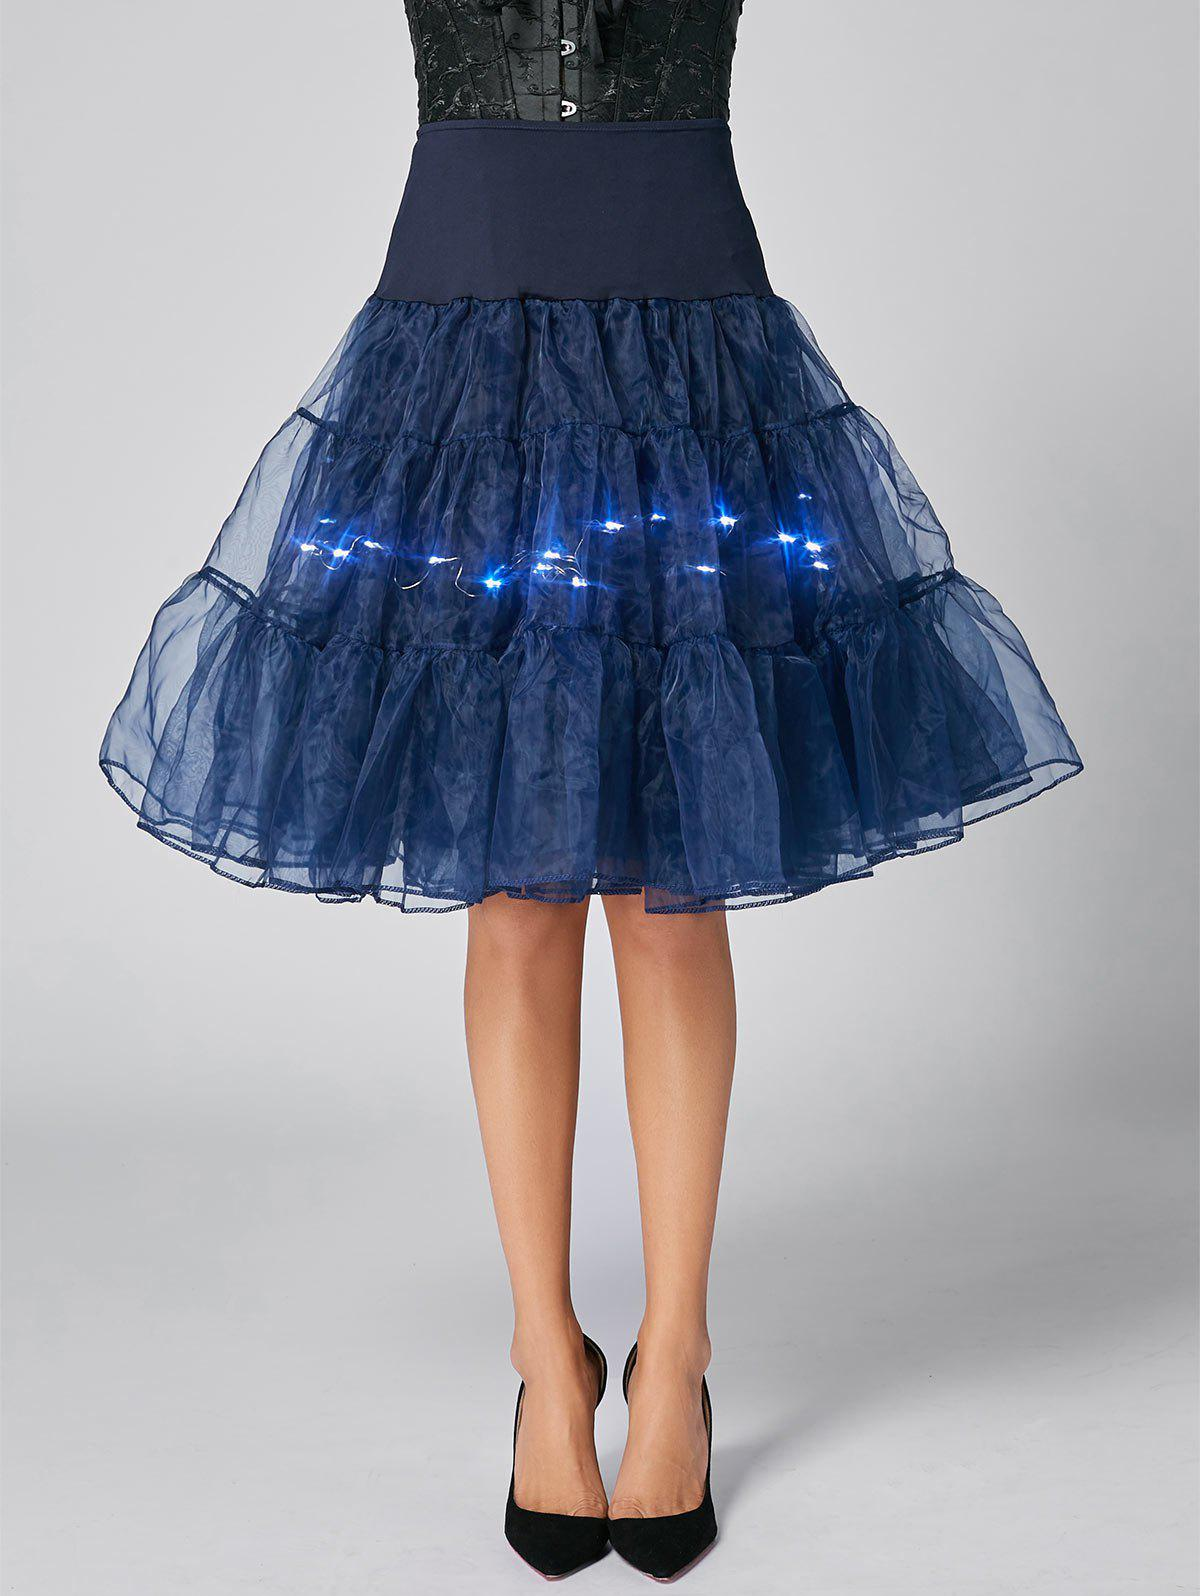 Flounce Light Up Cosplay Skirt - CERULEAN L